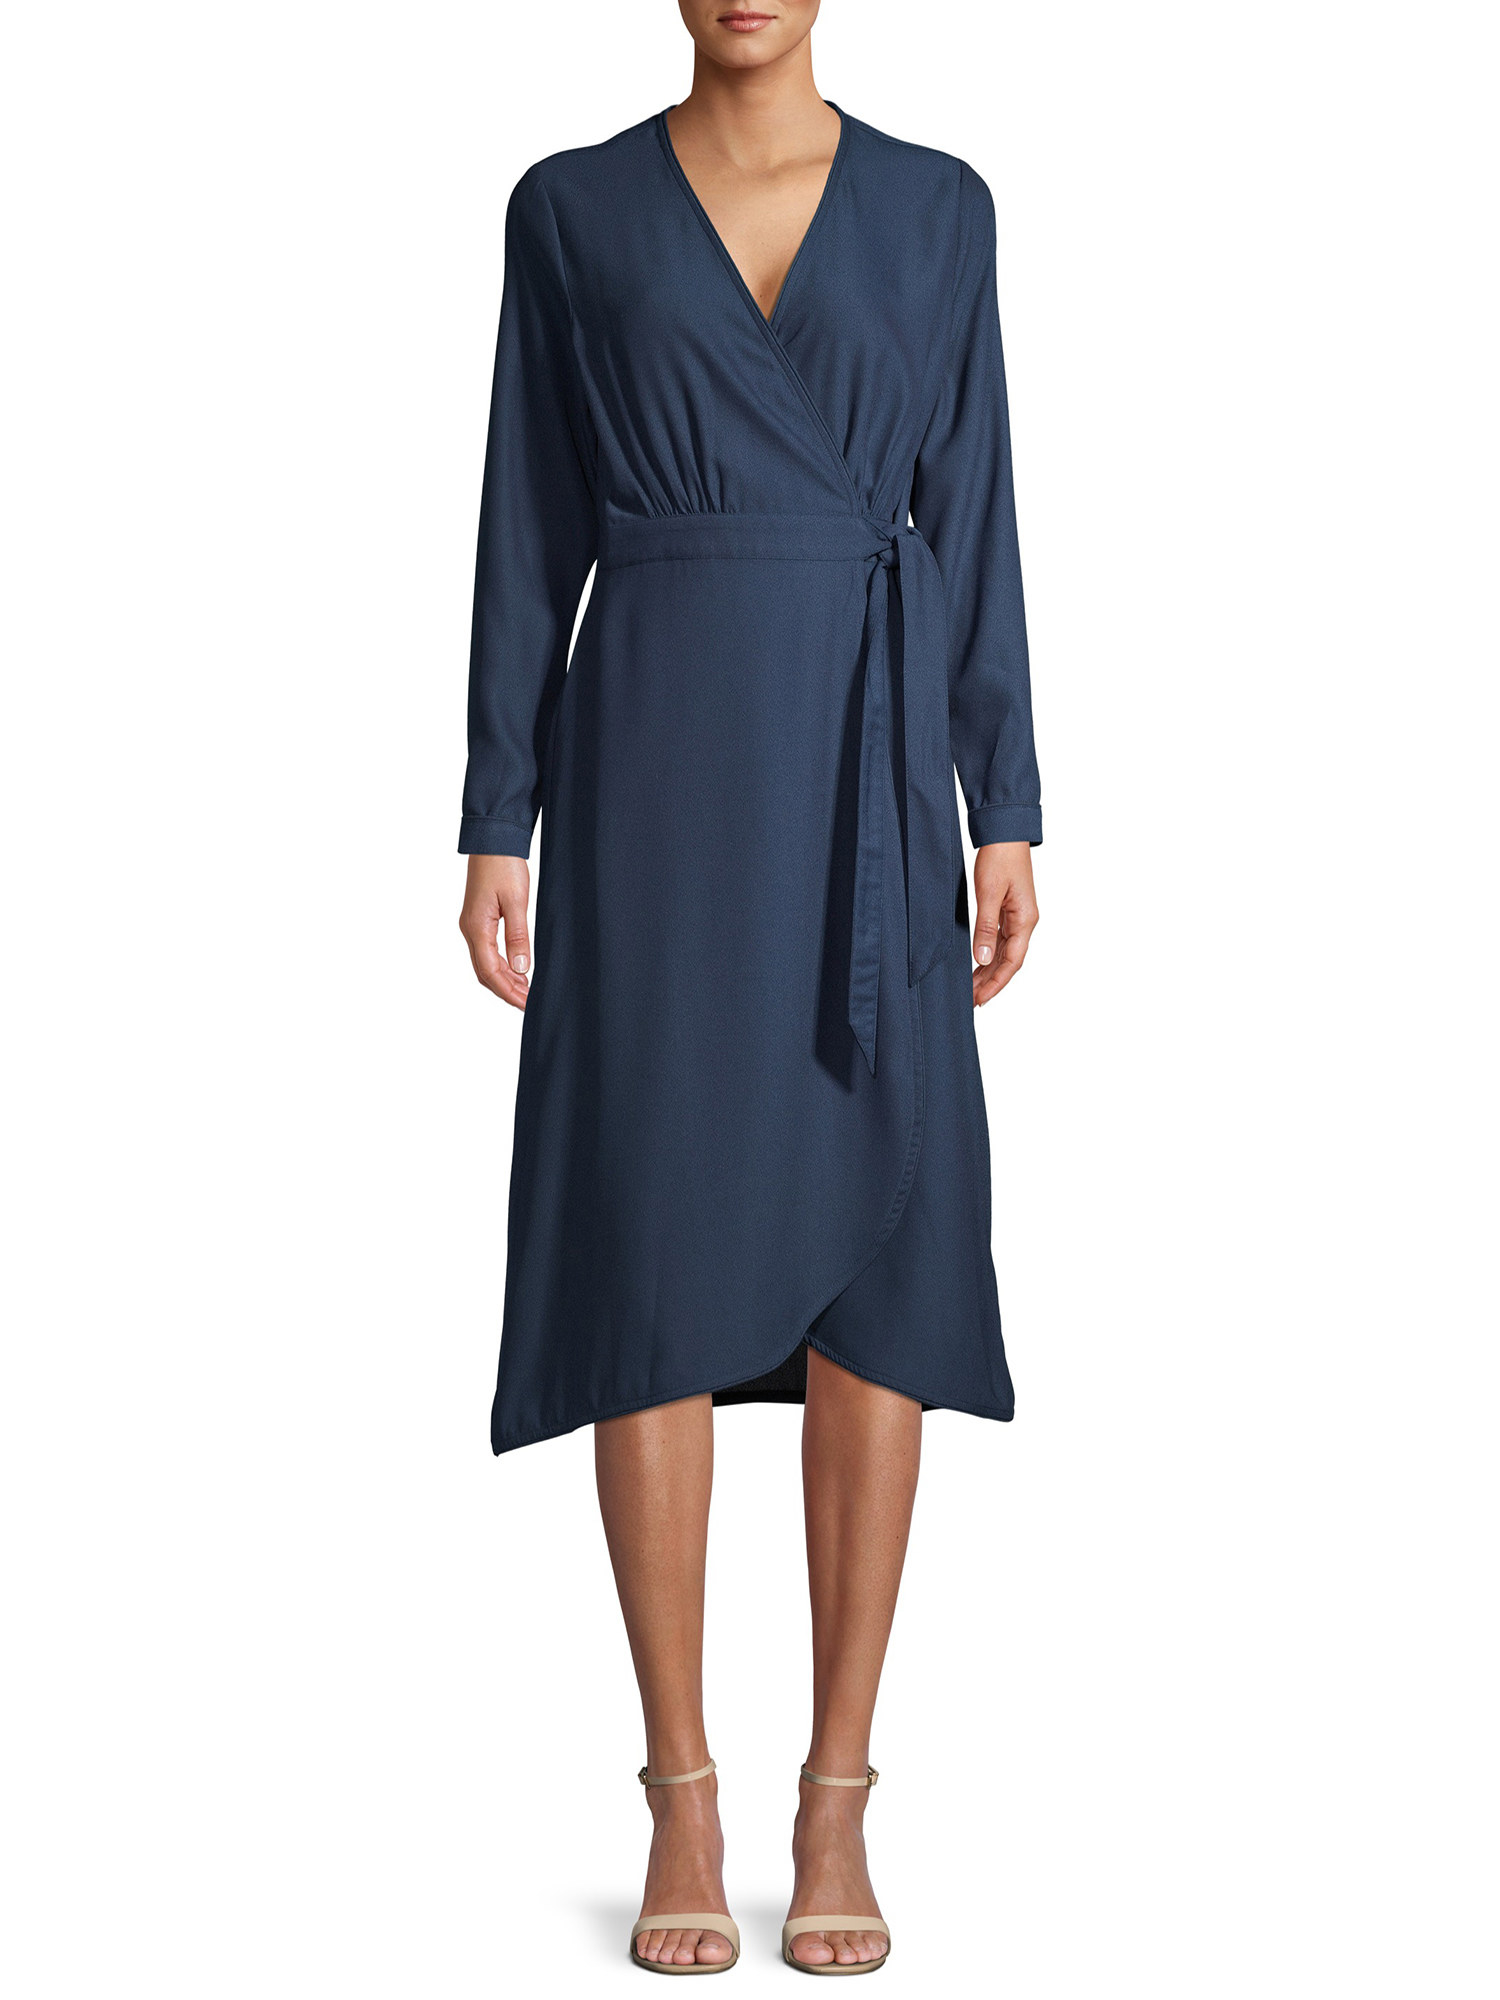 Model wearing faux wrap dress in blue.